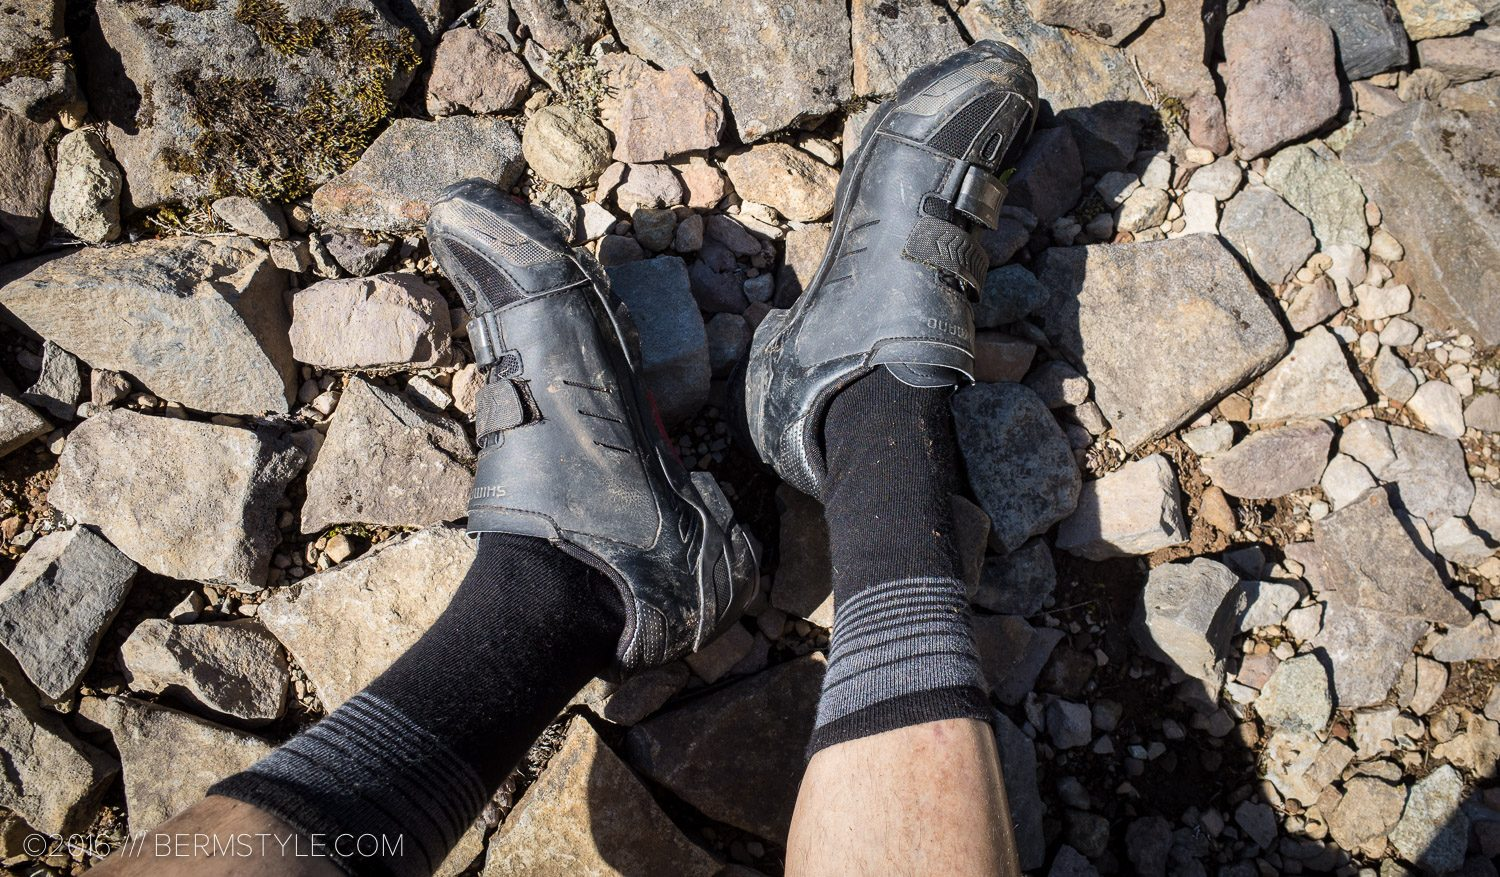 Active Life Wall Street Ultra Light Crew Sock from Point6 - Review: Point6 Merino Wool Socks